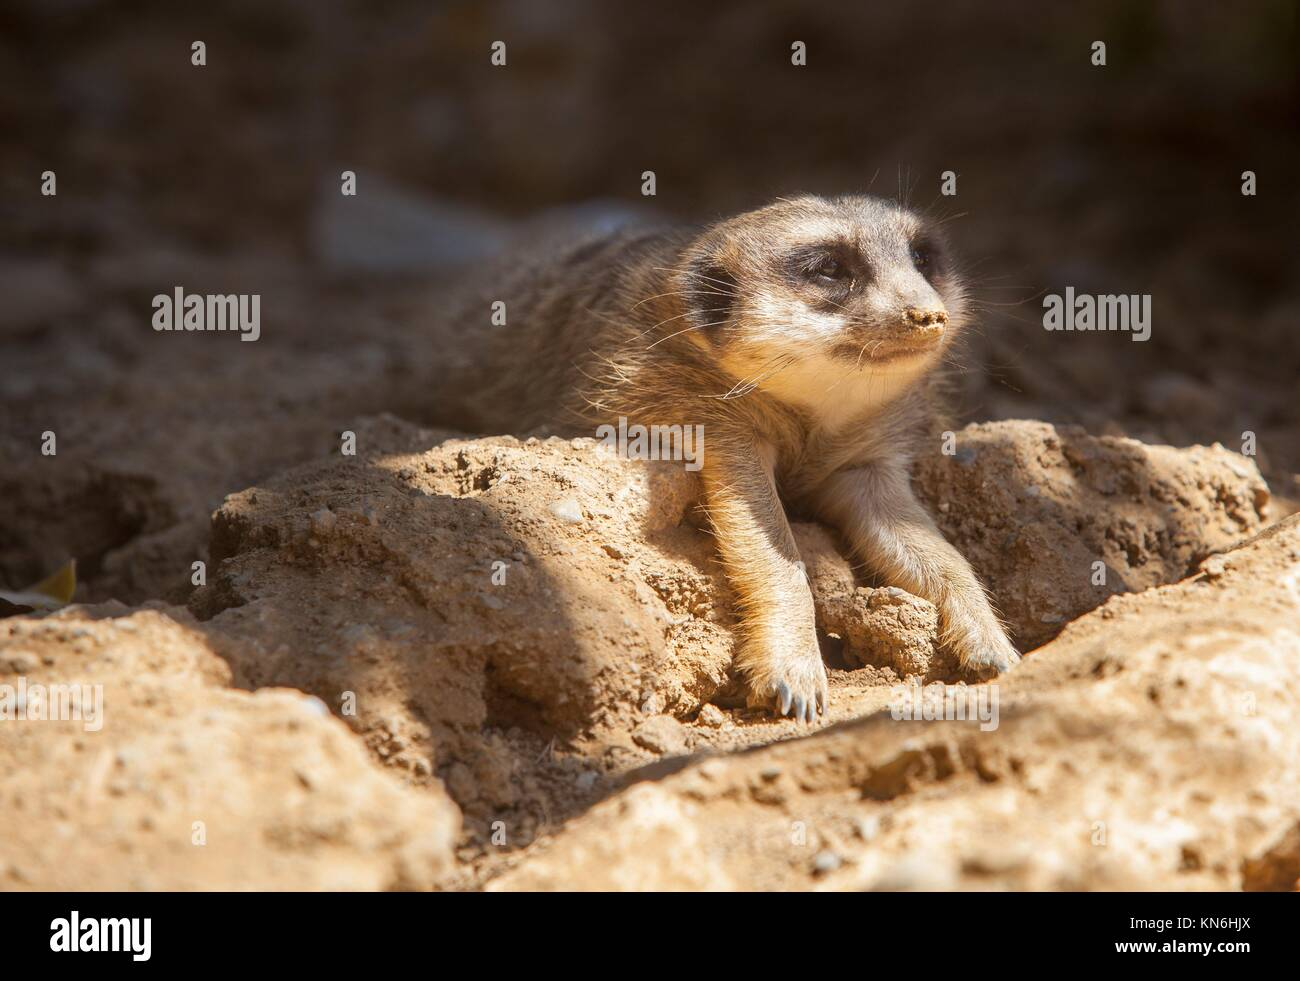 Meerkat lying on the sand with the head on sun and the body on shadow. - Stock Image